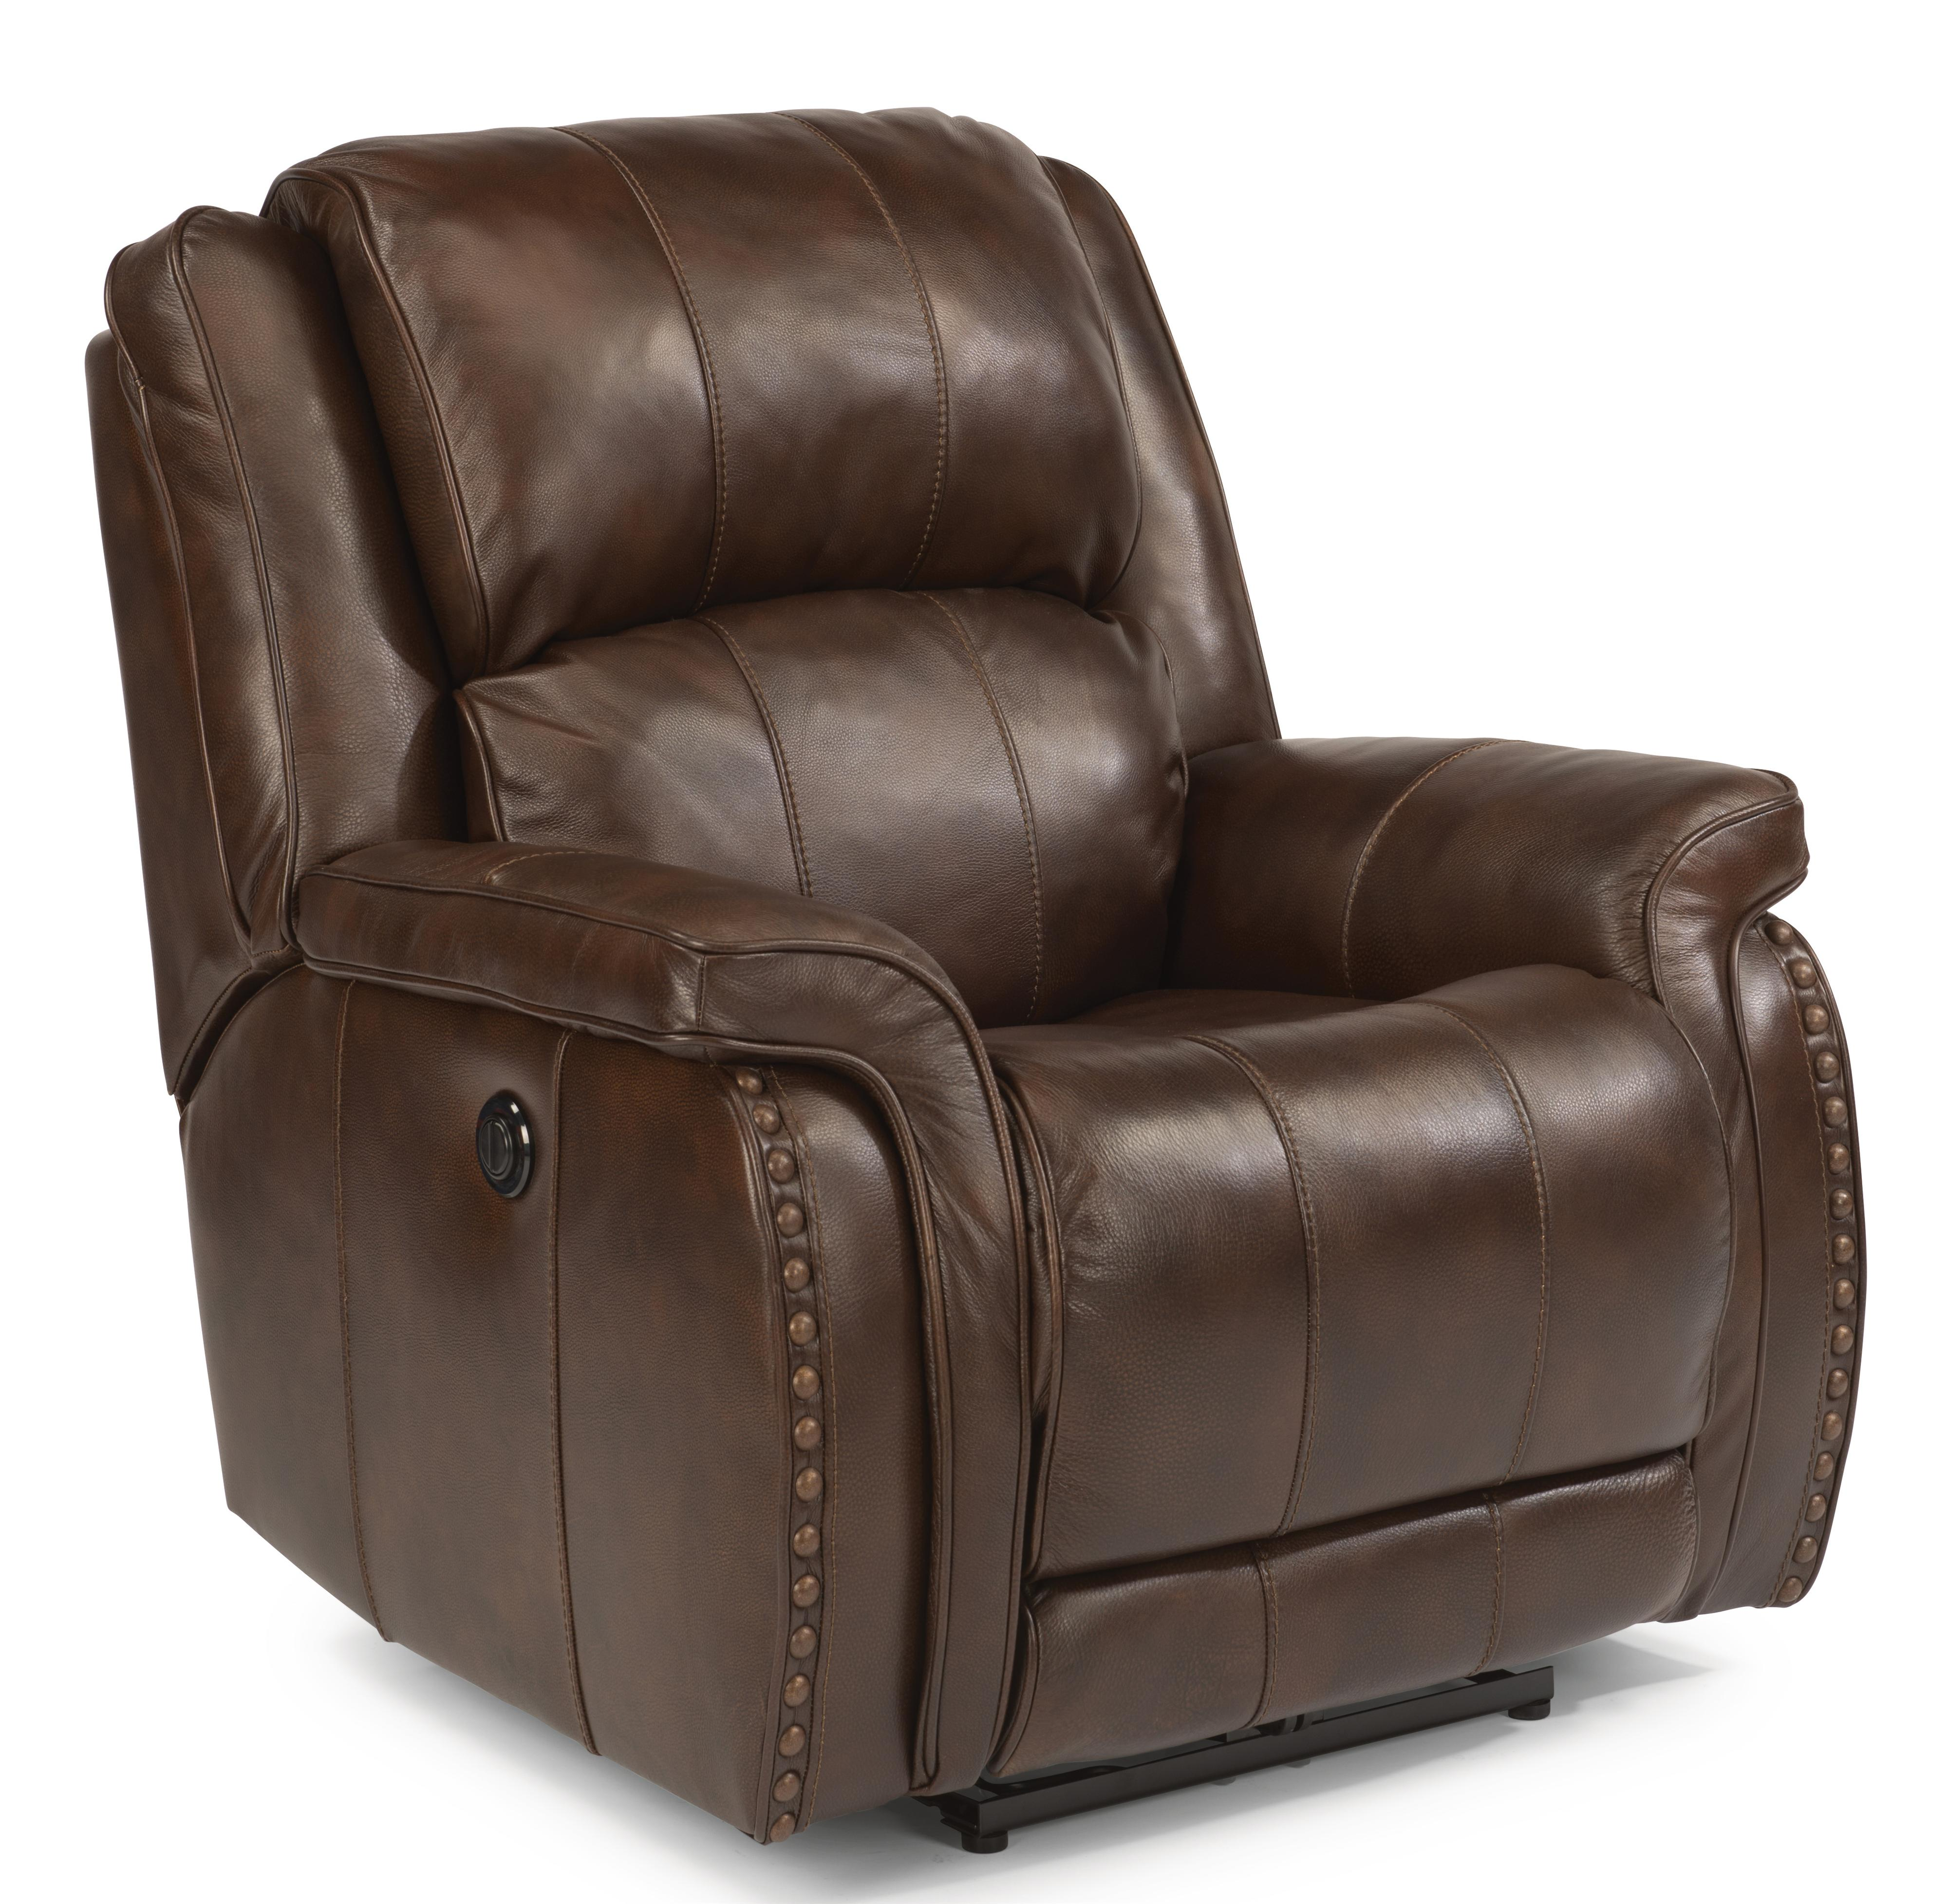 Merveilleux Flexsteel Latitudes Lorenzo Recliner With Power   Item Number: 244 500P 418